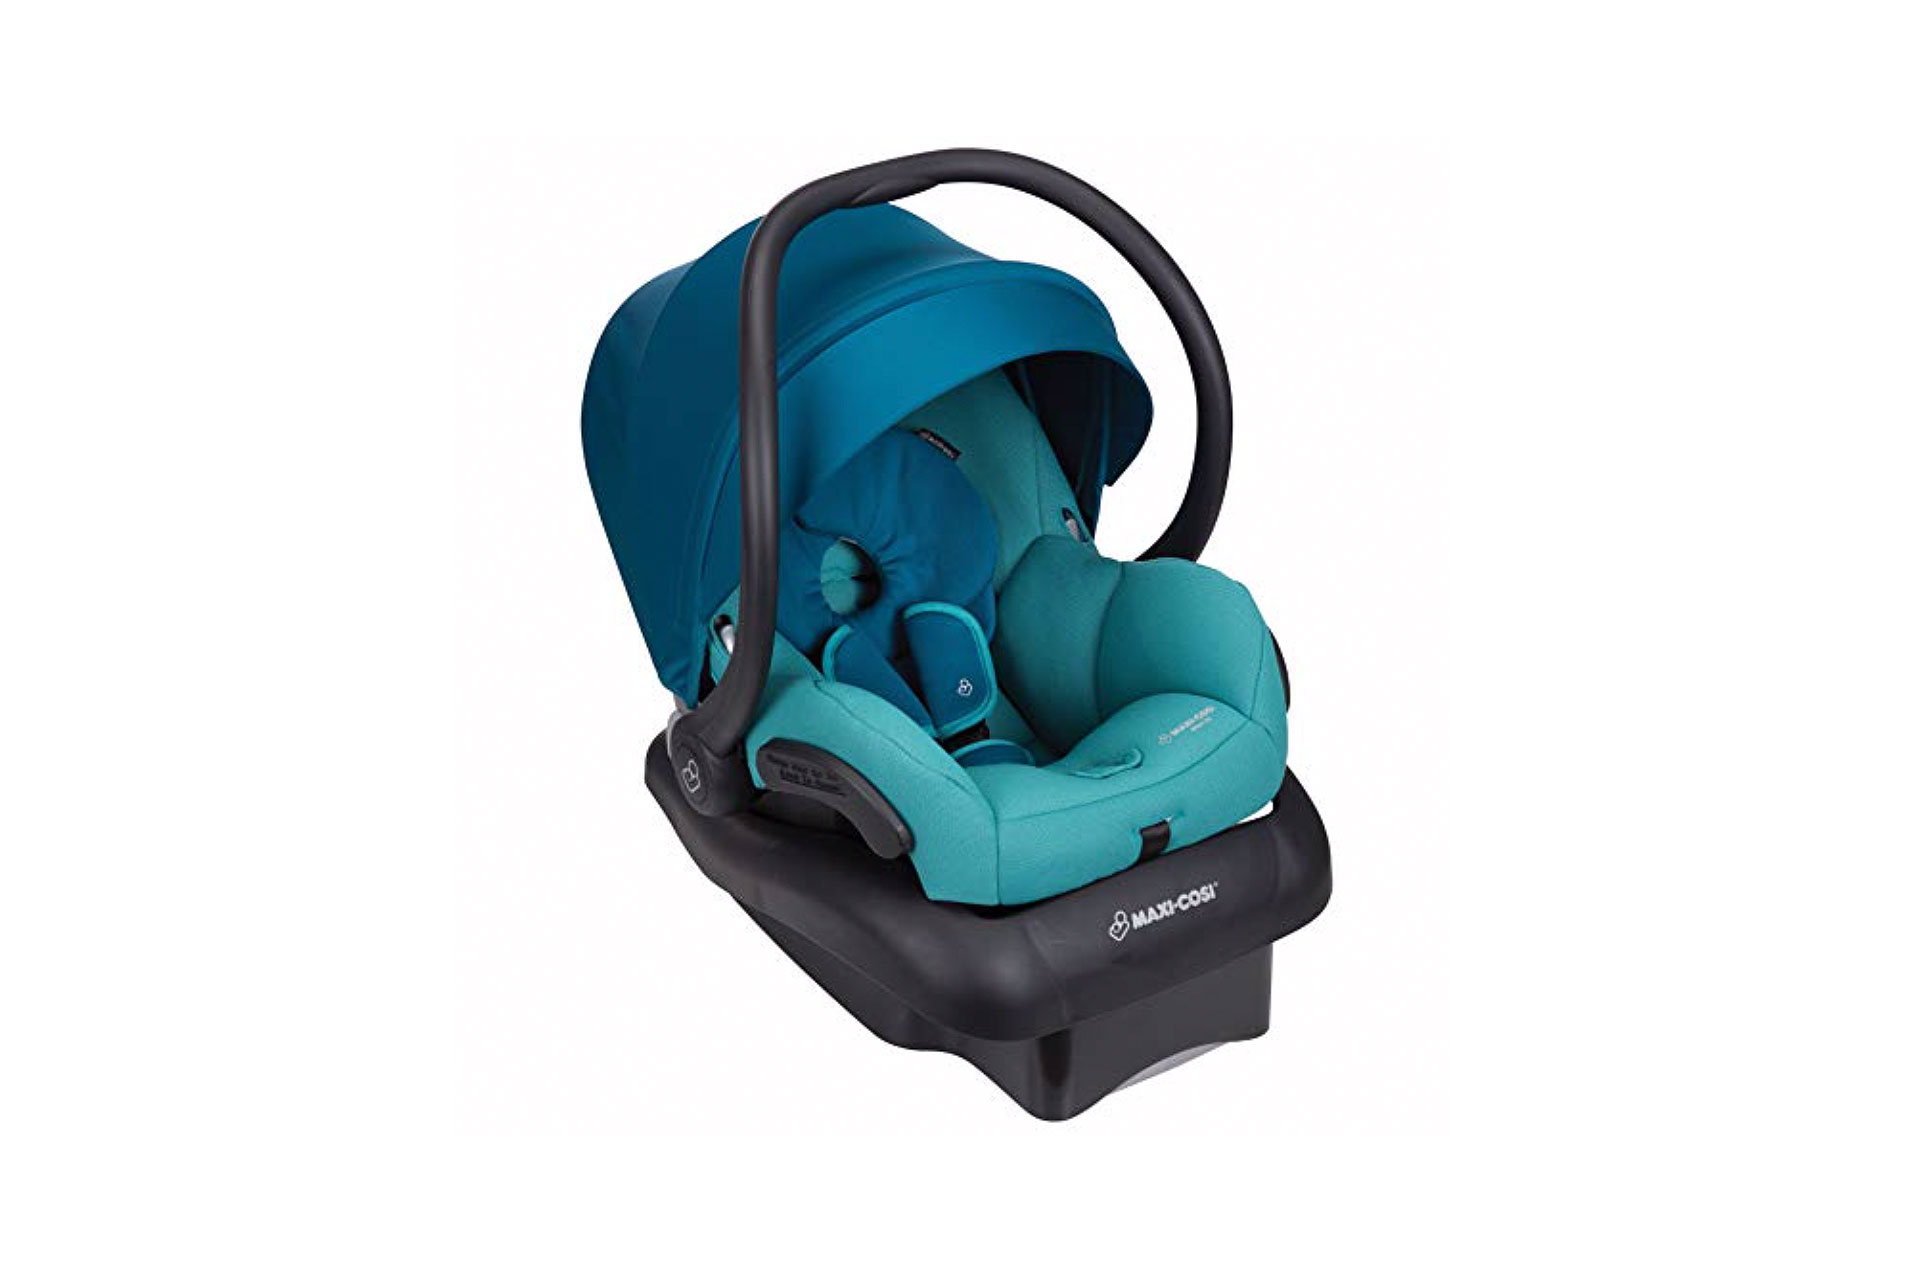 Maxi Cosi Infant Car Seat in Emerald Tile; Courtesy of Amazon